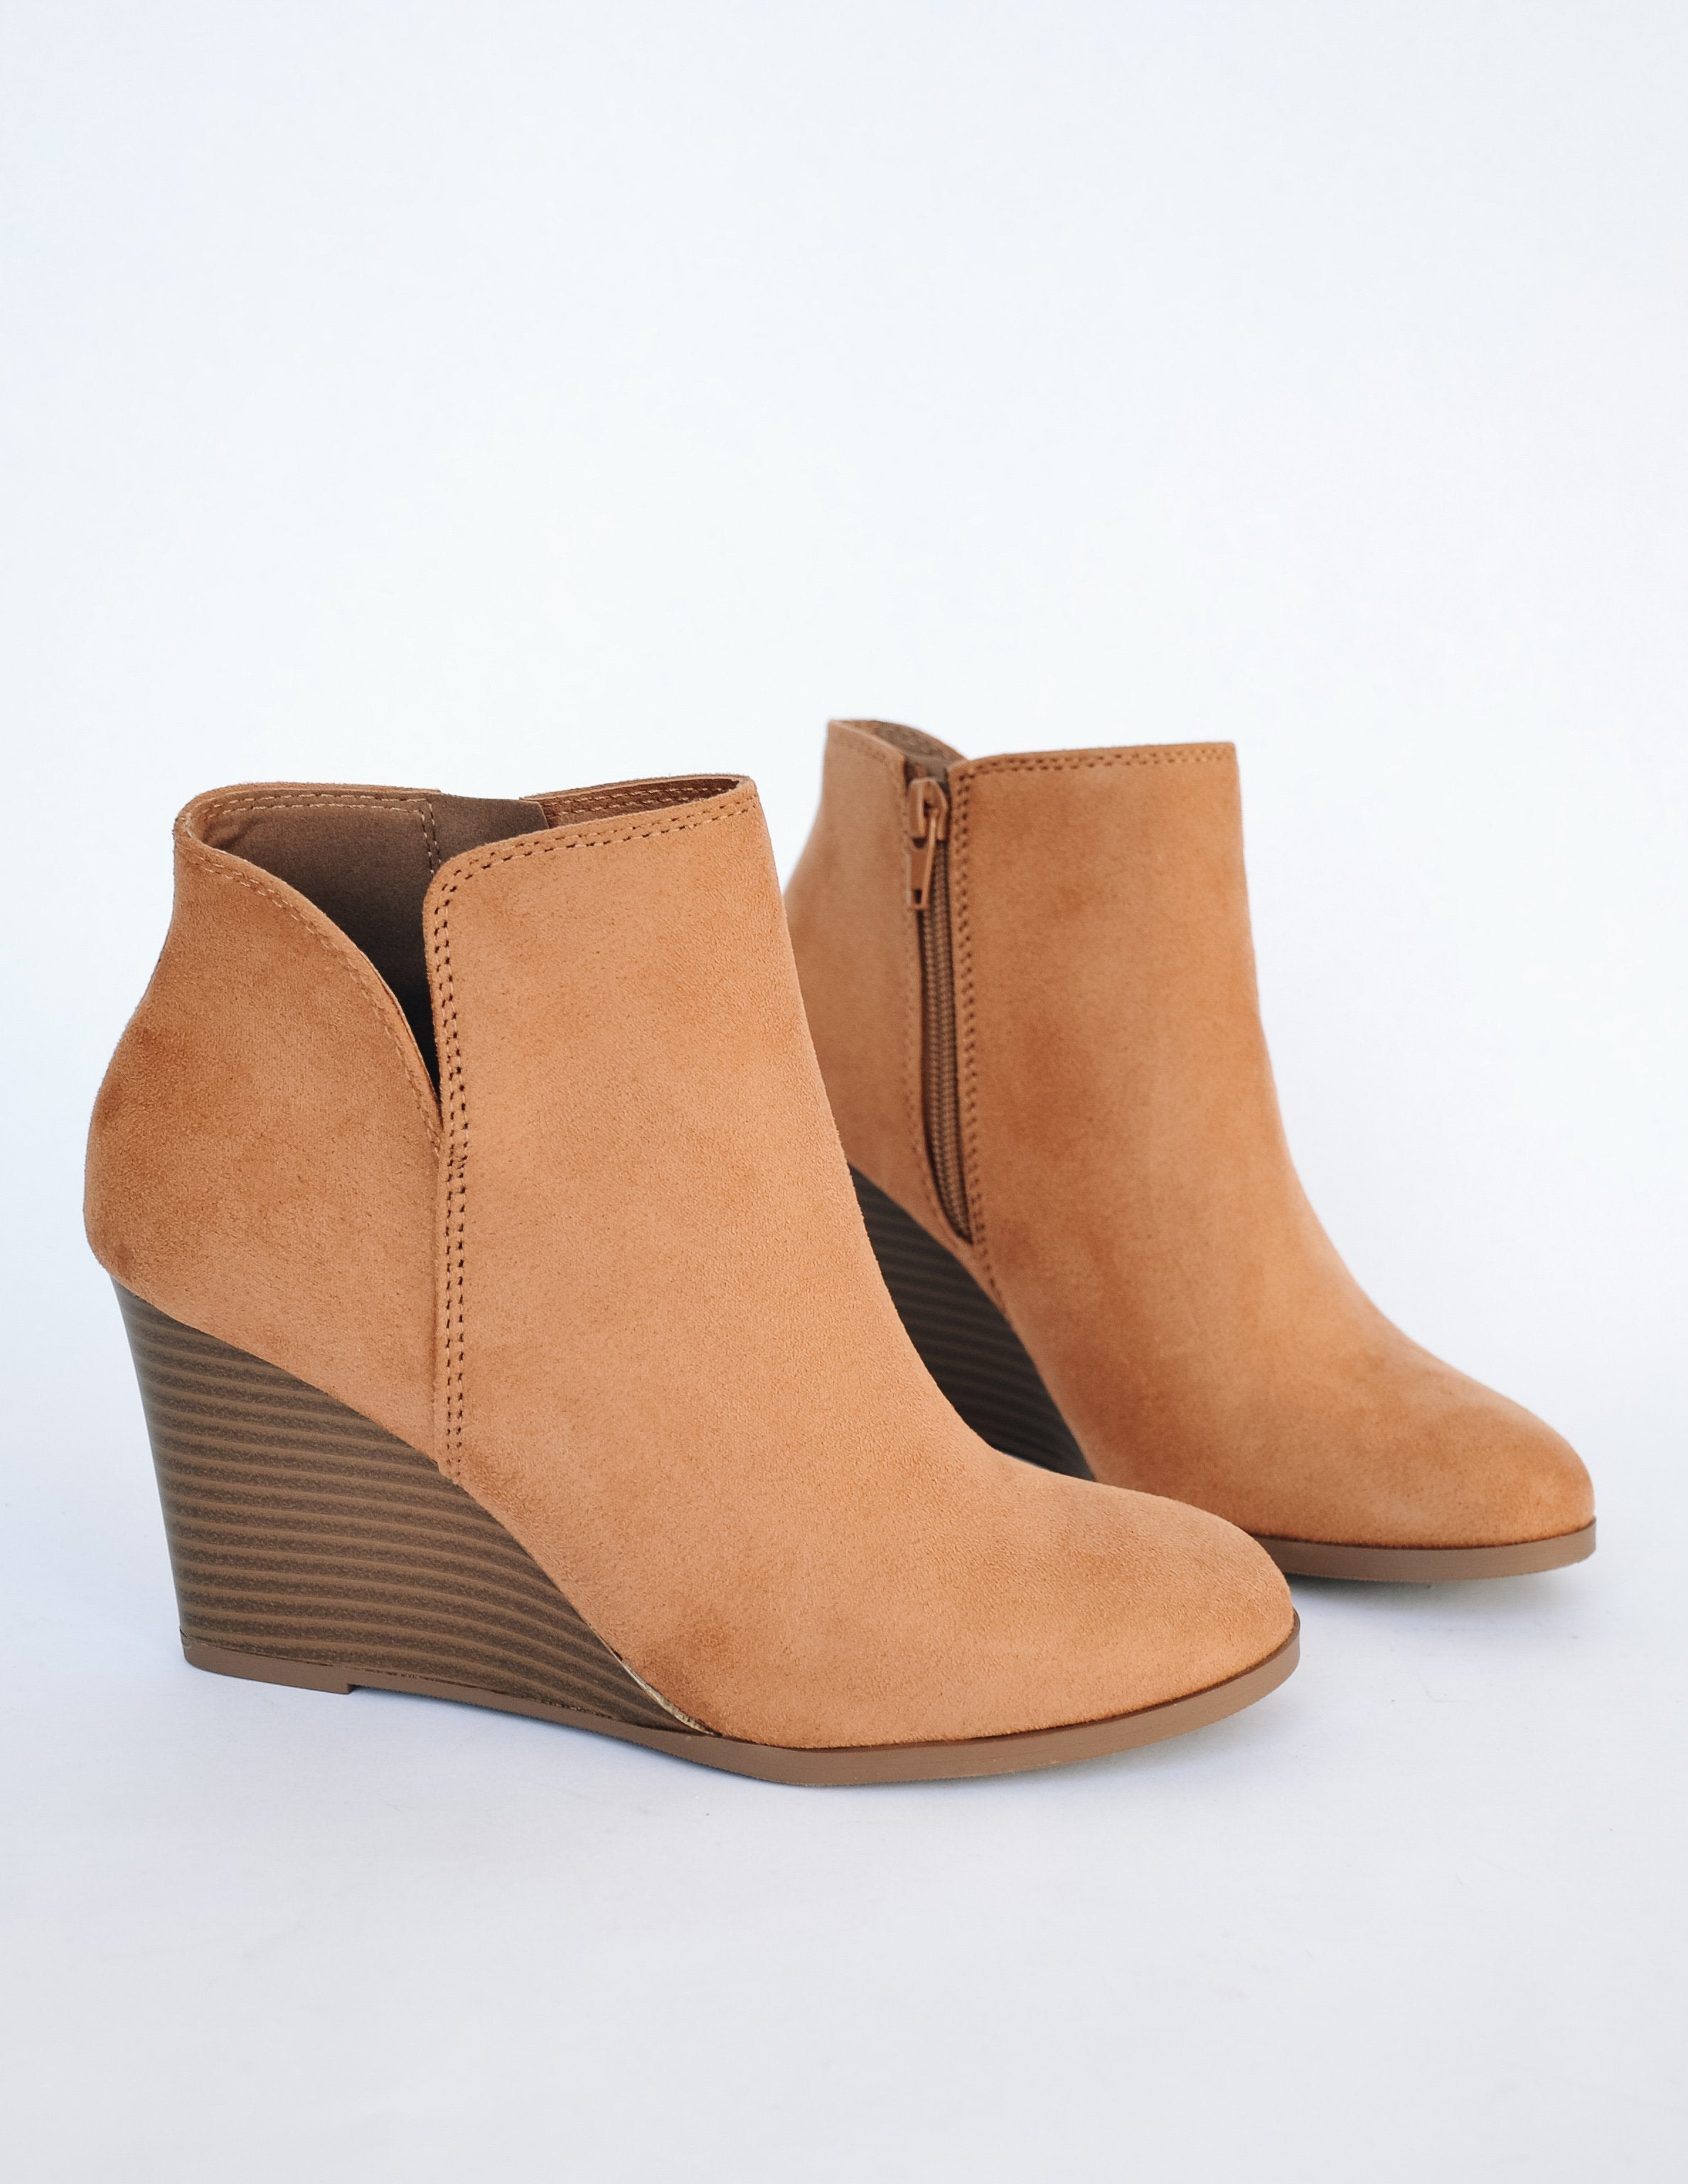 Faux suede risk taker wedge heel with small v cut on side and inner zipper